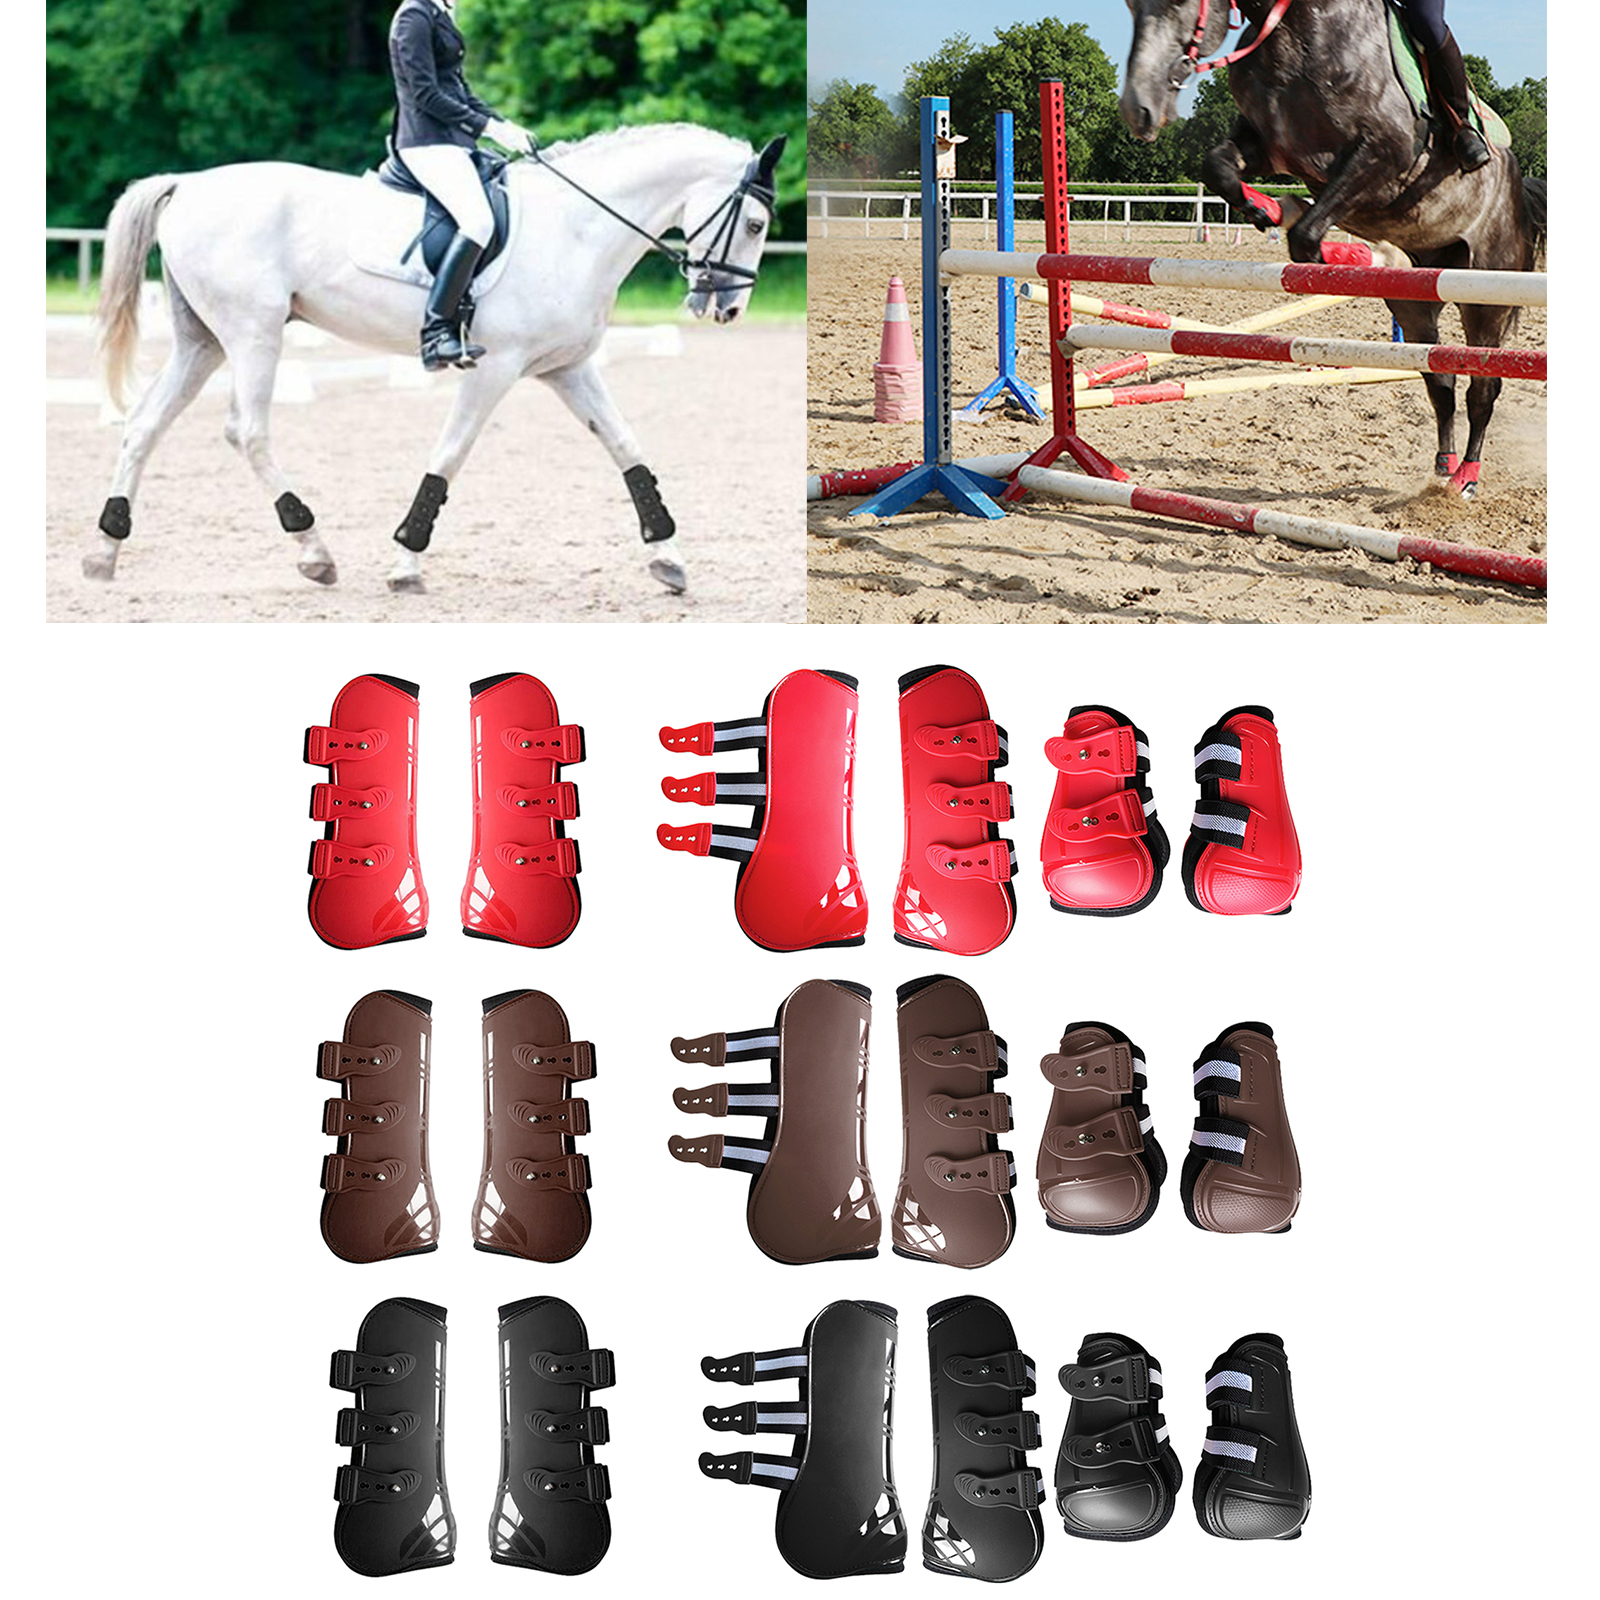 Horse Tendon Boot Front/Rear Leg Boots Sets Adjustable Horse Bell Boots Legs Equine Protective Gear for Horse Pony